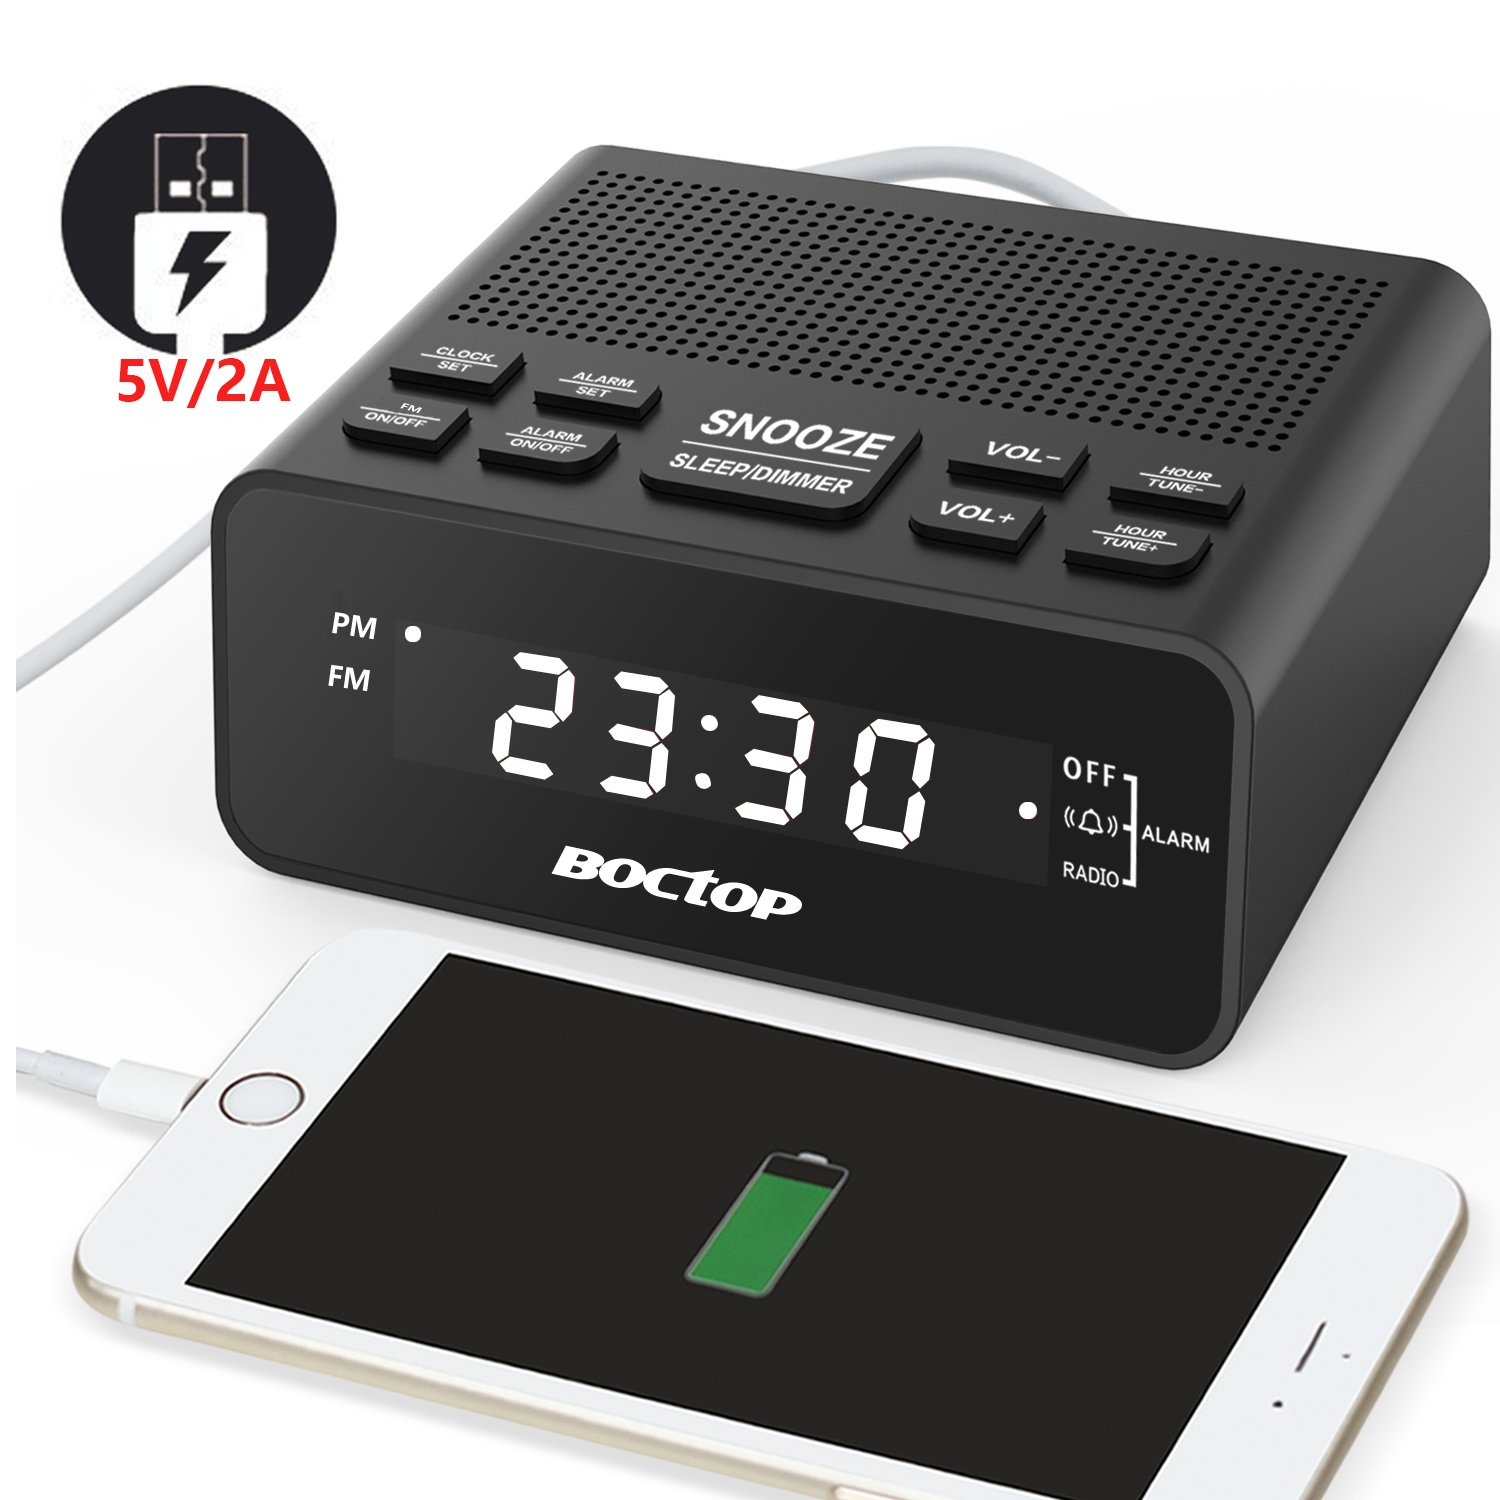 """FM Digital Alarm Clock Radio with Sleep Timer FM Radio, 2A USB Charging Port, 0.6"""" Dimmer LED Display, Snooze and Battery Backup for Bedrooms, Tables"""